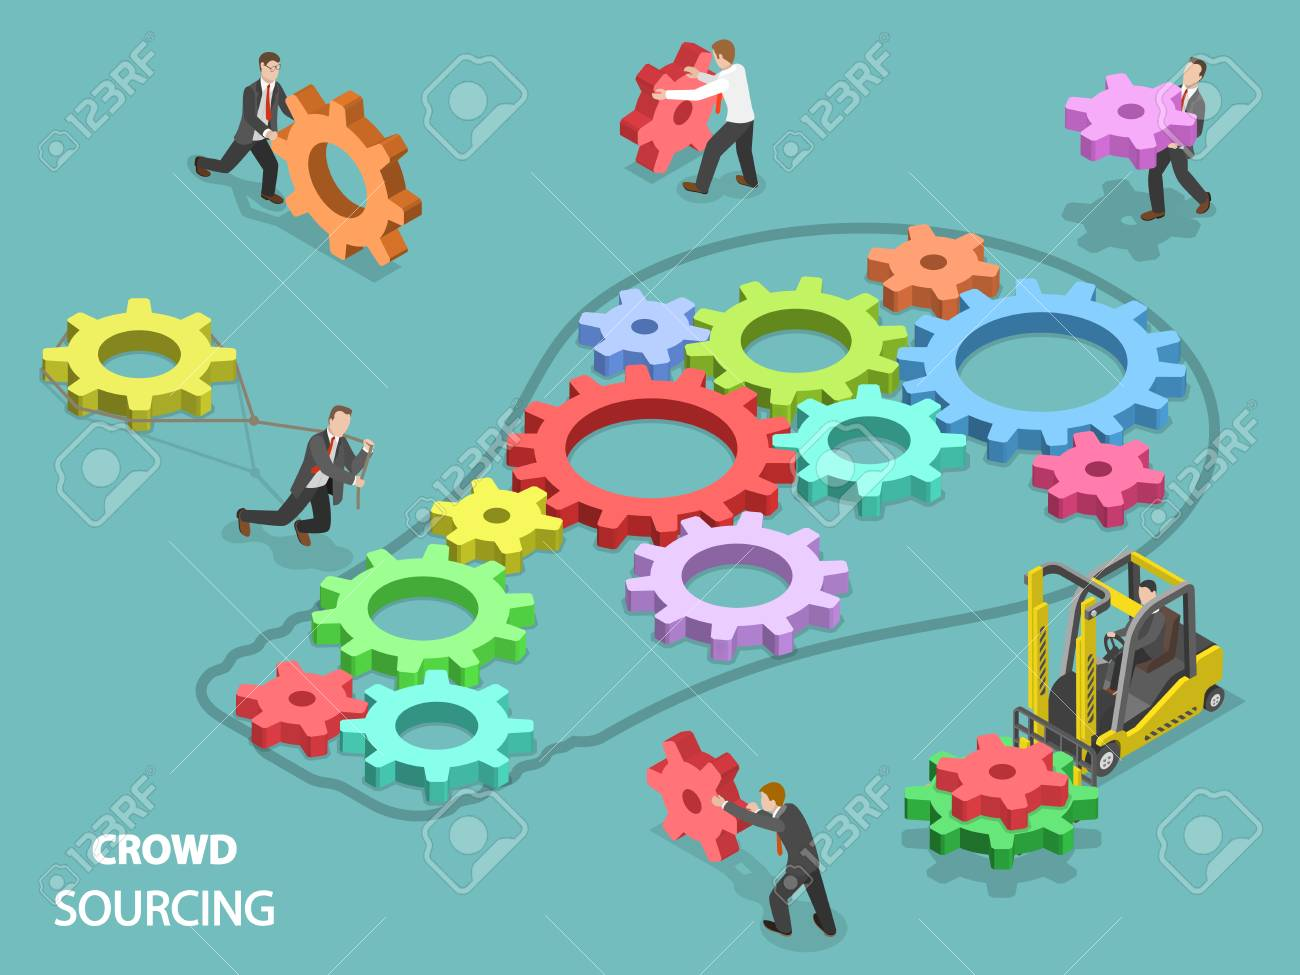 Crowd sourcing flat isometric vector concept. - 98590292